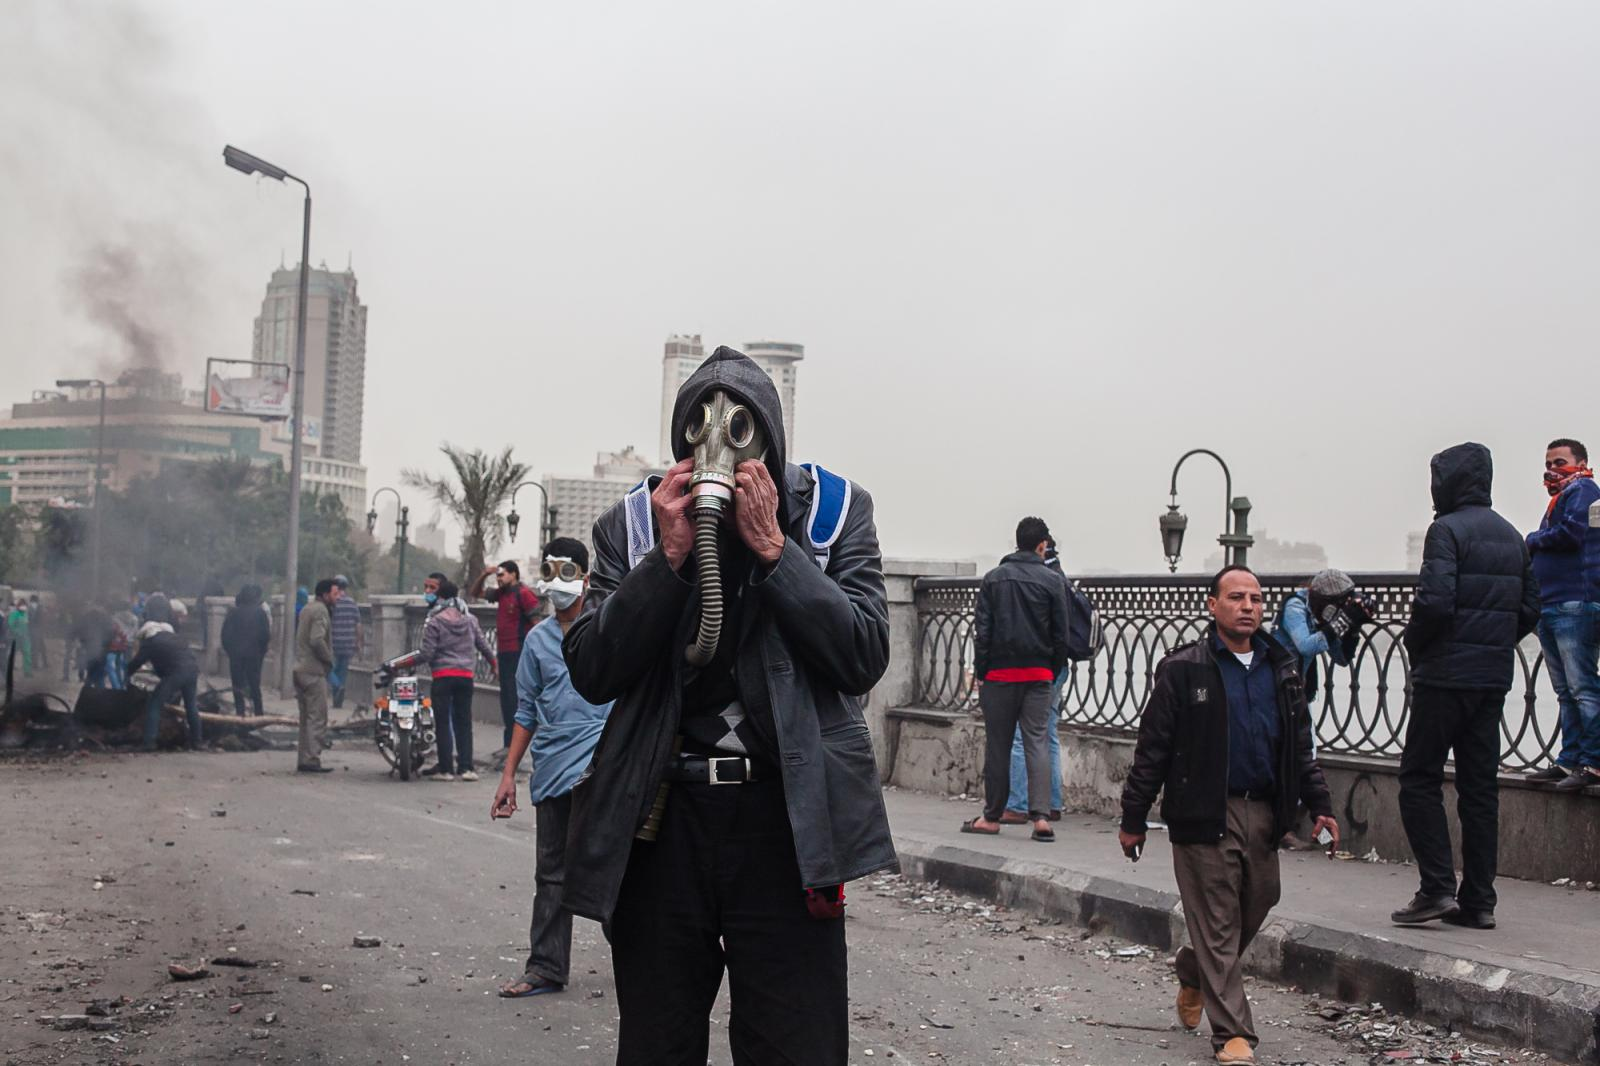 Security forces fire tear gas at protesters who threw rocks back near Tahrir Square in Cairo on January 28, 2013. Violence erupted on January 25th, the second anniversary of the uprising that toppled longtime ruler Hosni Mubarak. Egypt's main opposition rejected president, Mohamed Morsi's call for dialogue unless their conditions were met.